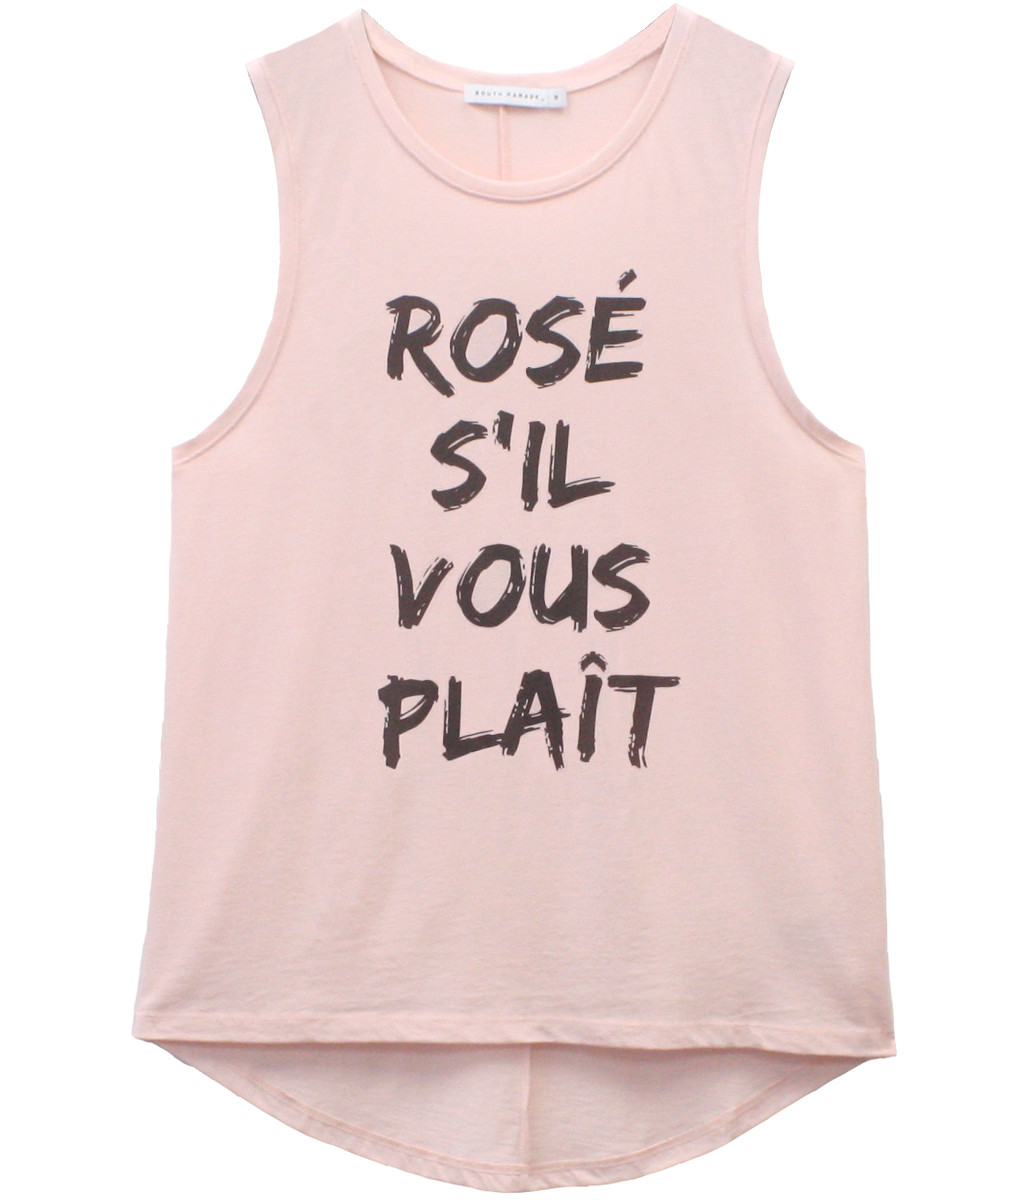 South-Parade-Muscle-Tee-Rose-Sil-Vous-Plait-Pink-T-shirt.jpg